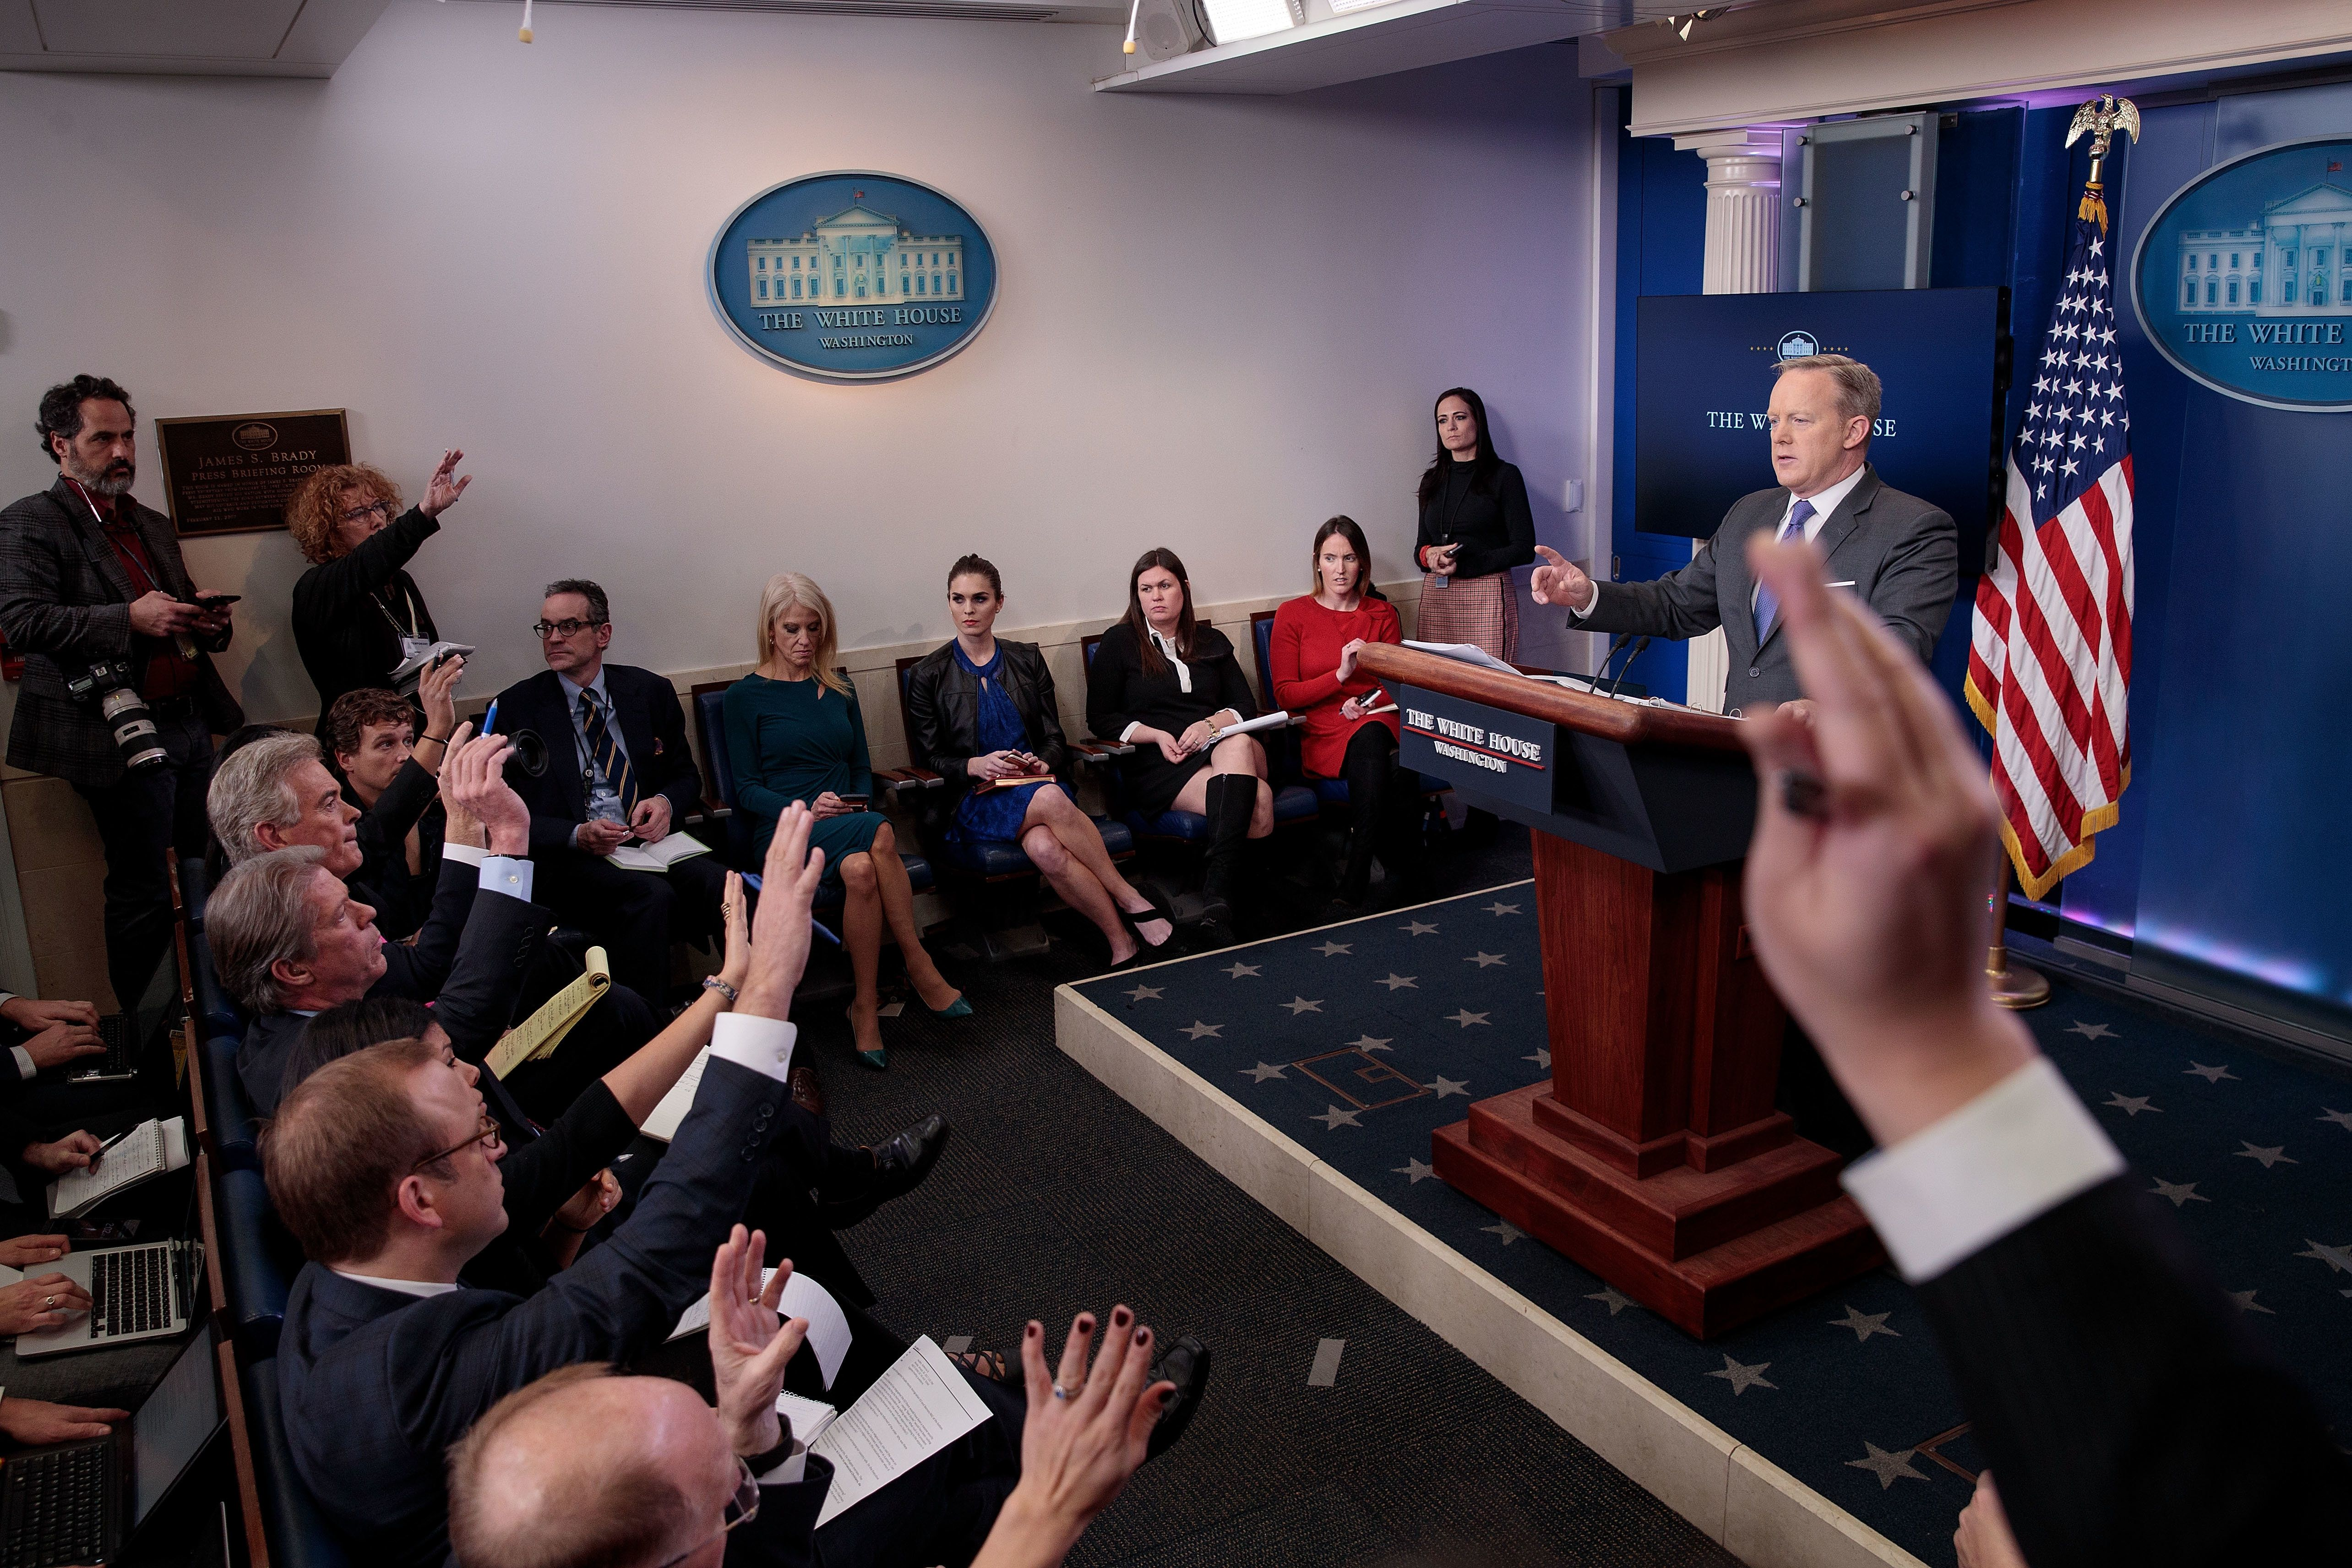 Press secretary Sean Spicer answers questions during hisdaily press briefing at the White House on Jan. 30.